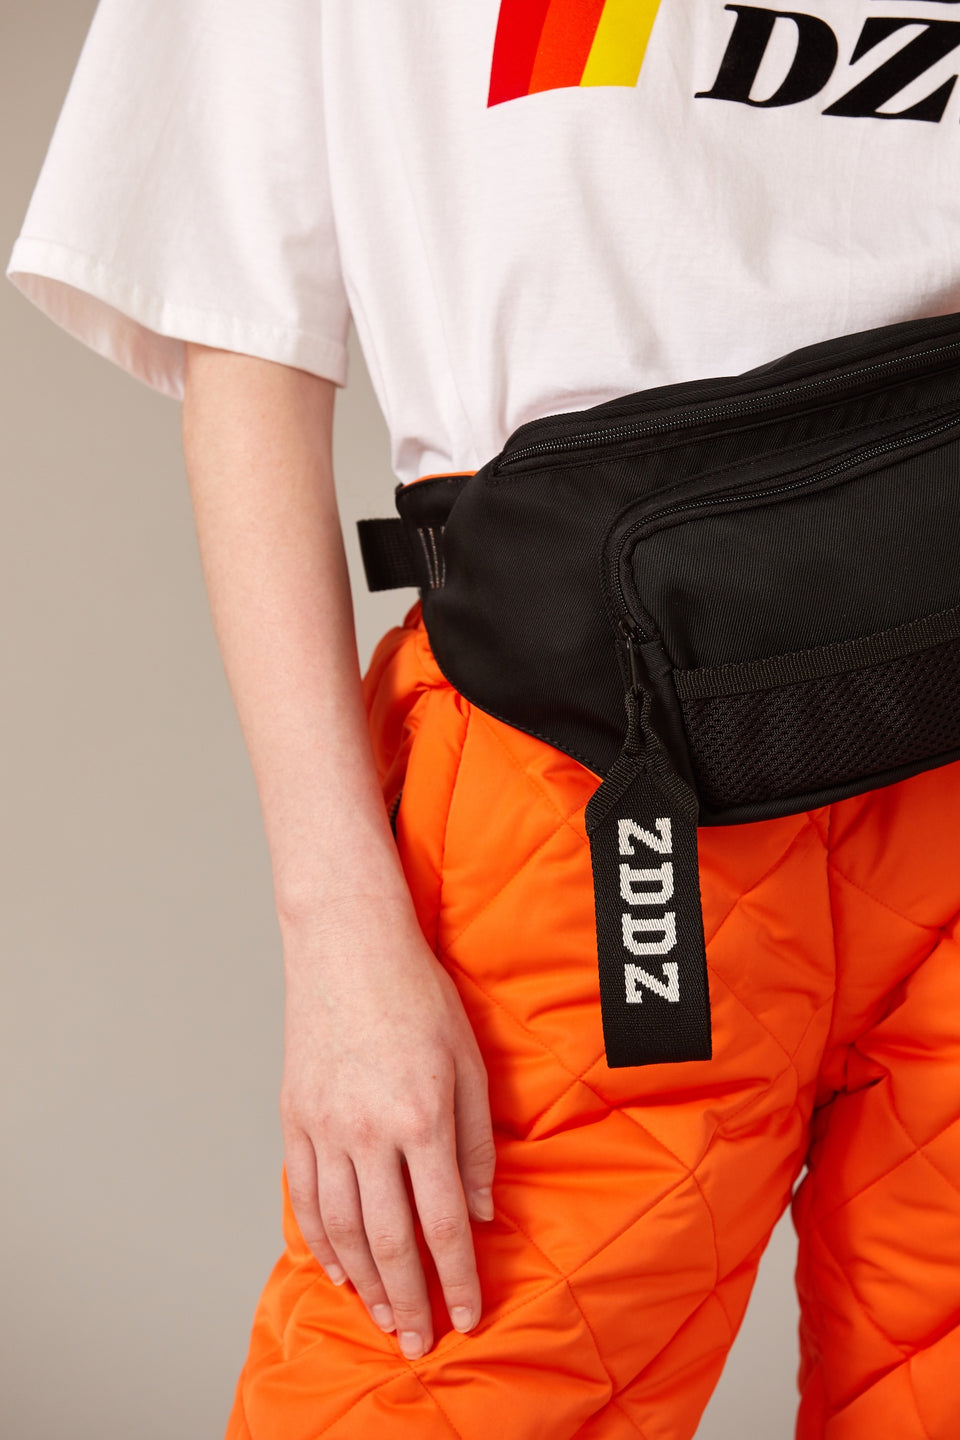 ZDDZ Parachute Inc Bum Bag